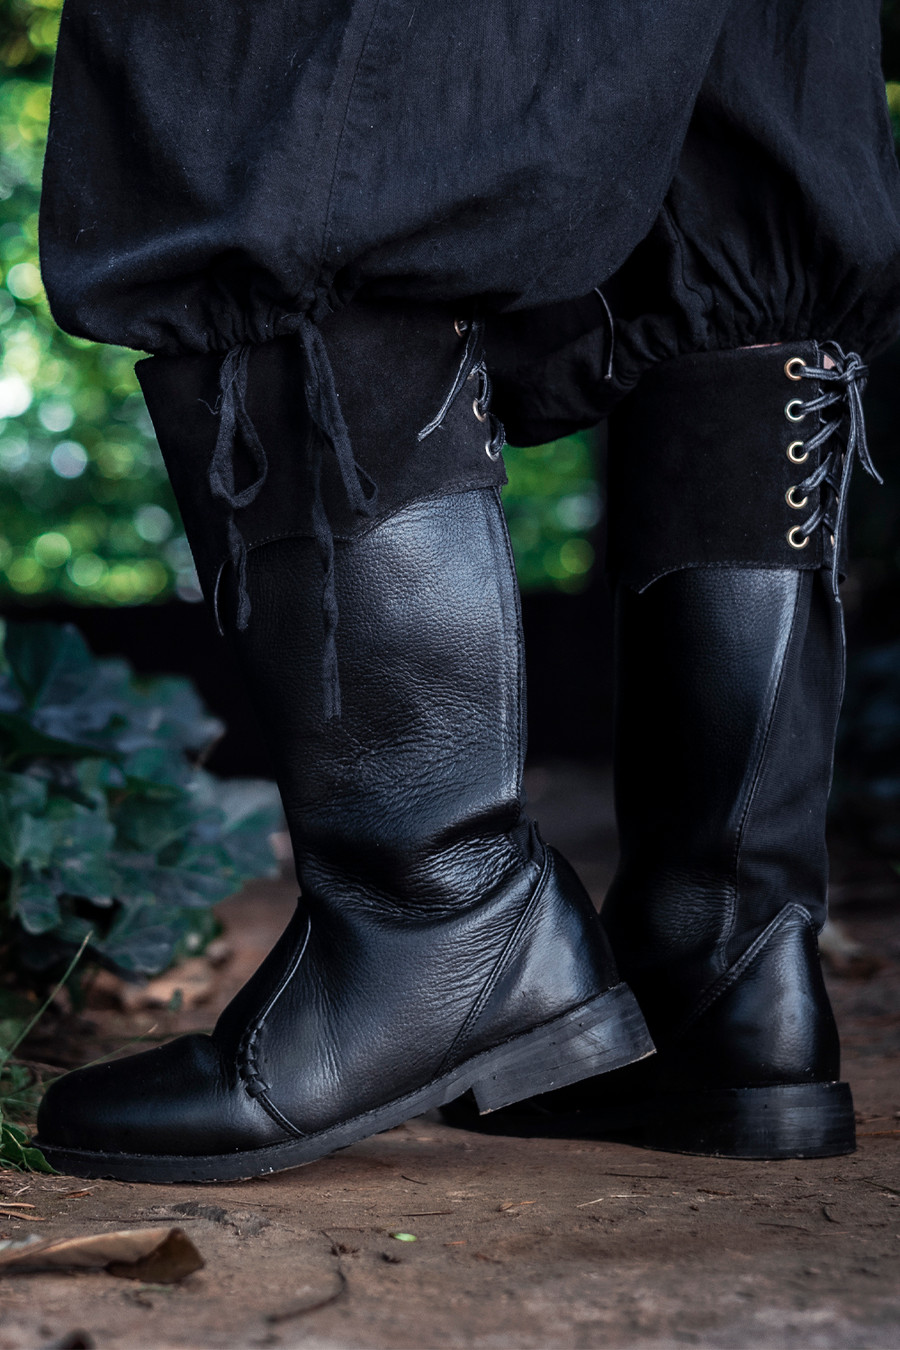 Blacktide Pirate Boots